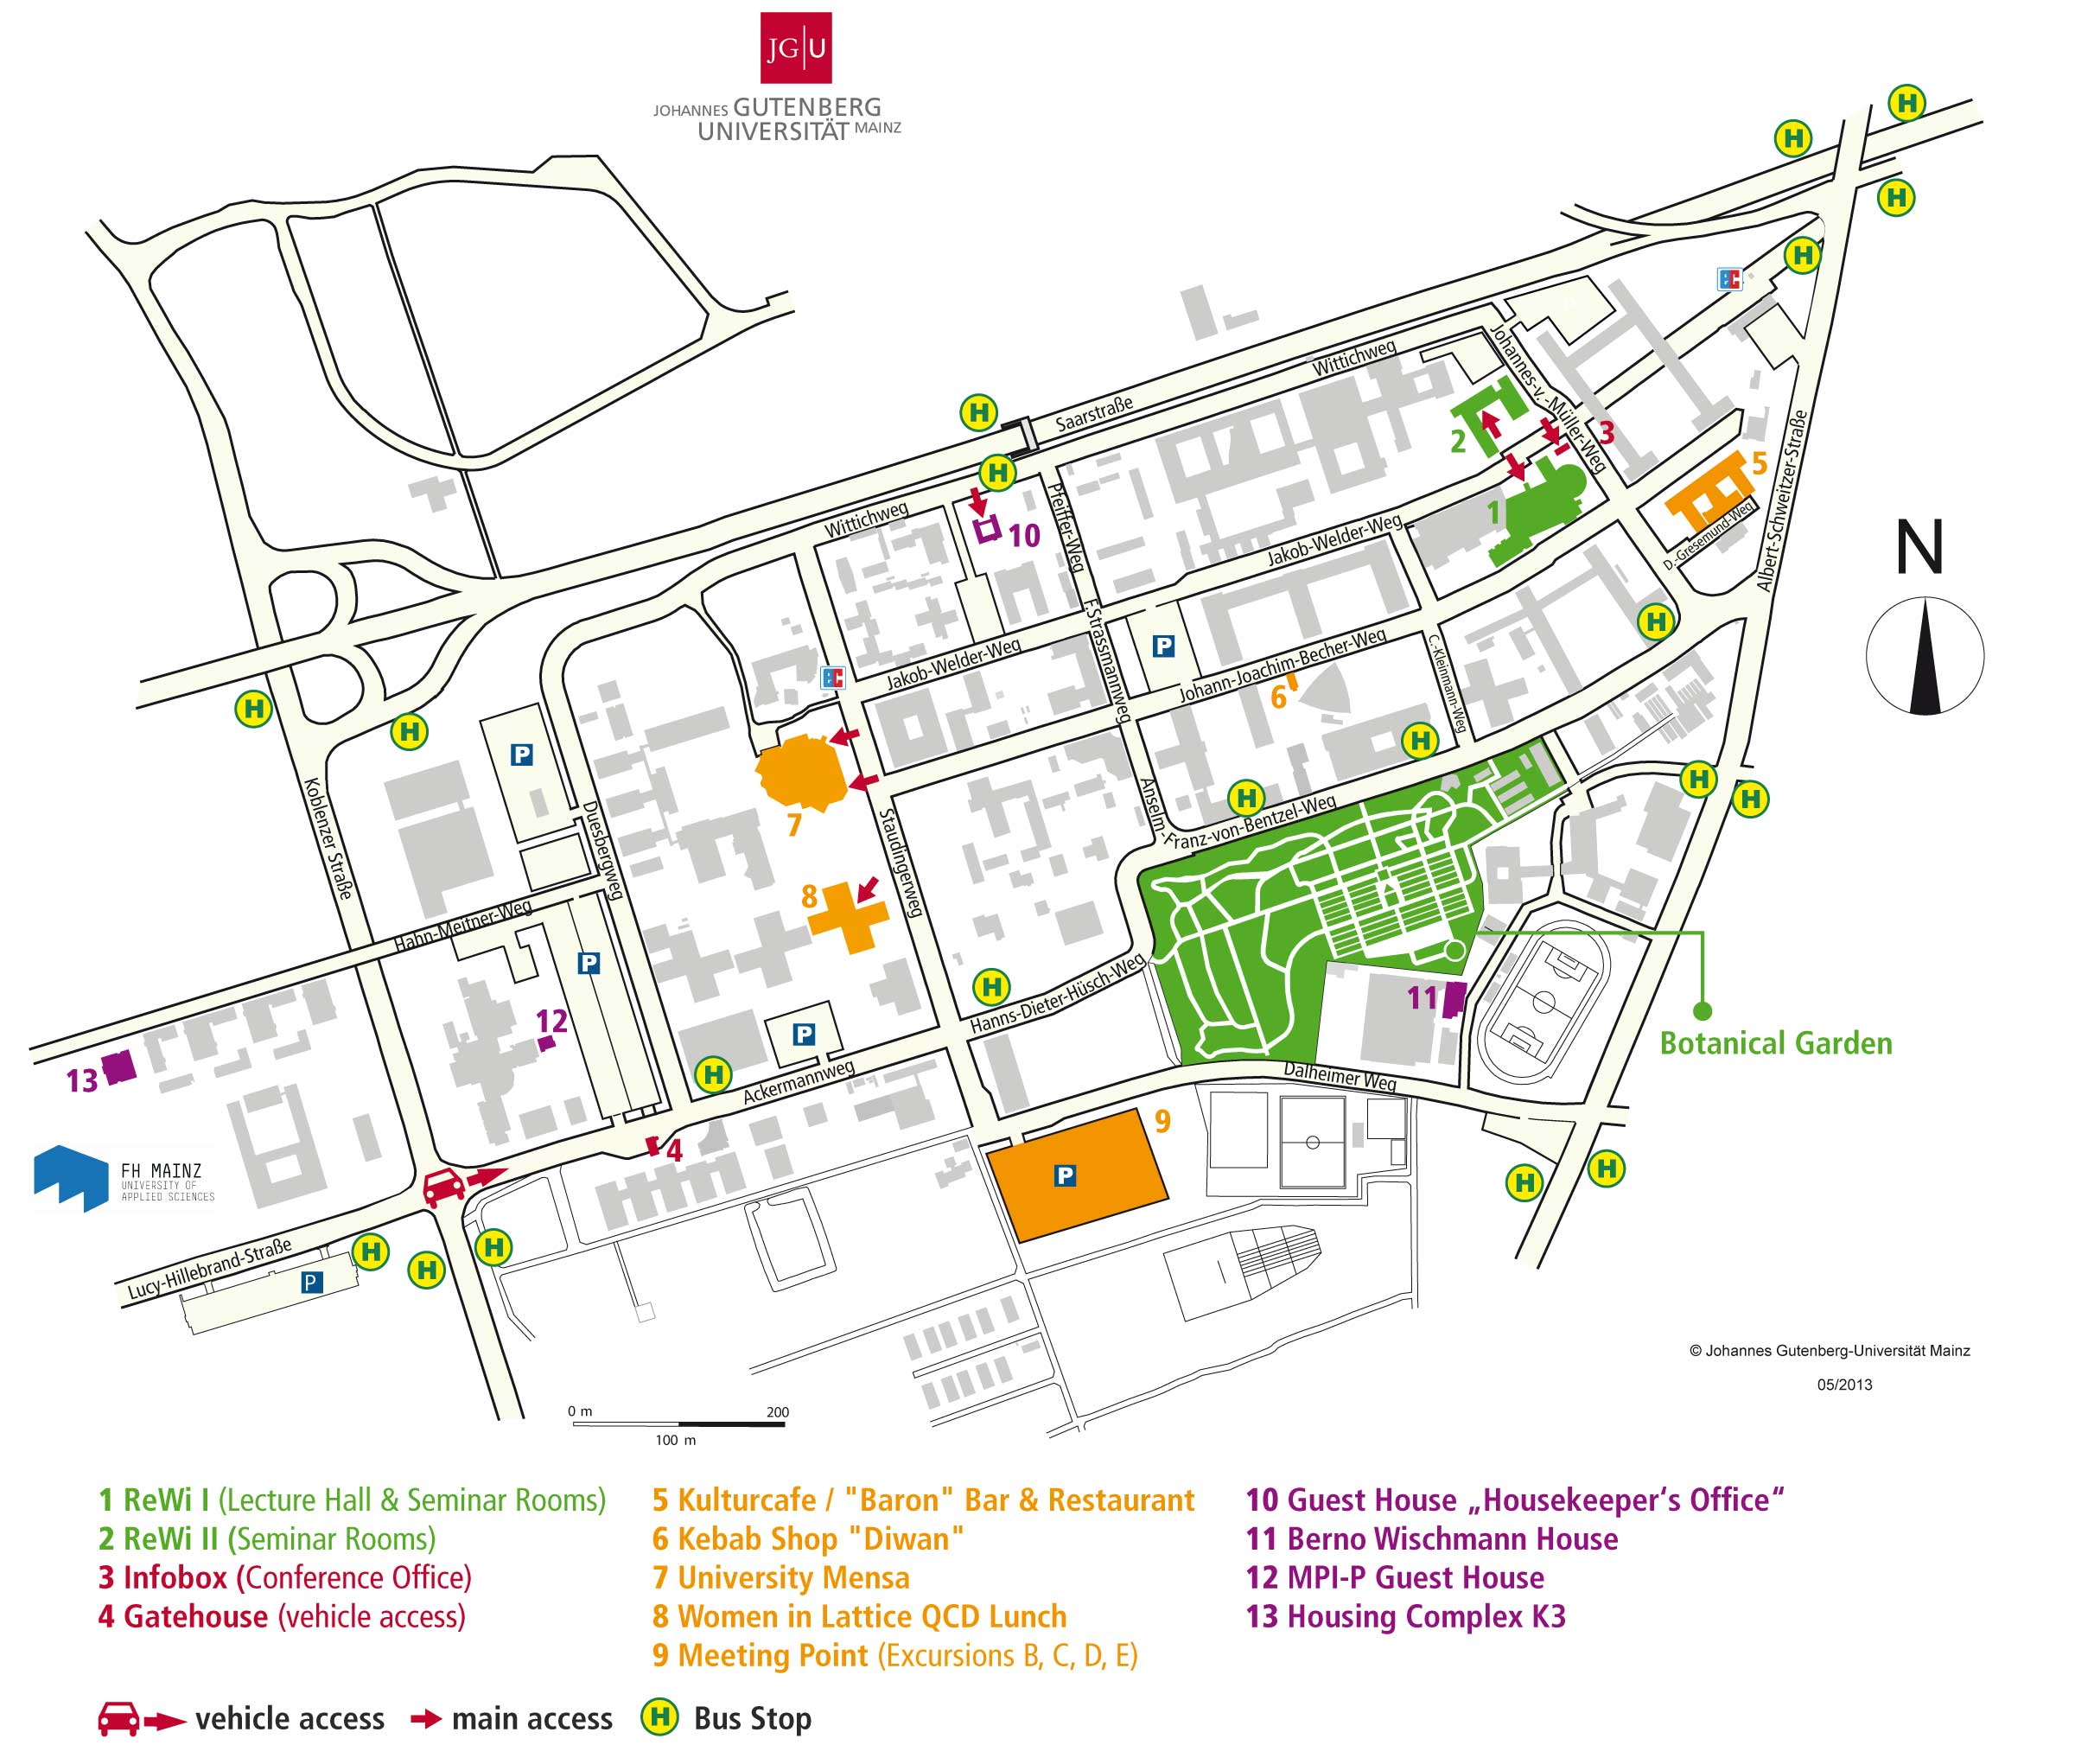 Heidelberg University Campus Map.Excursion C Guided Tour Of Heidelberg